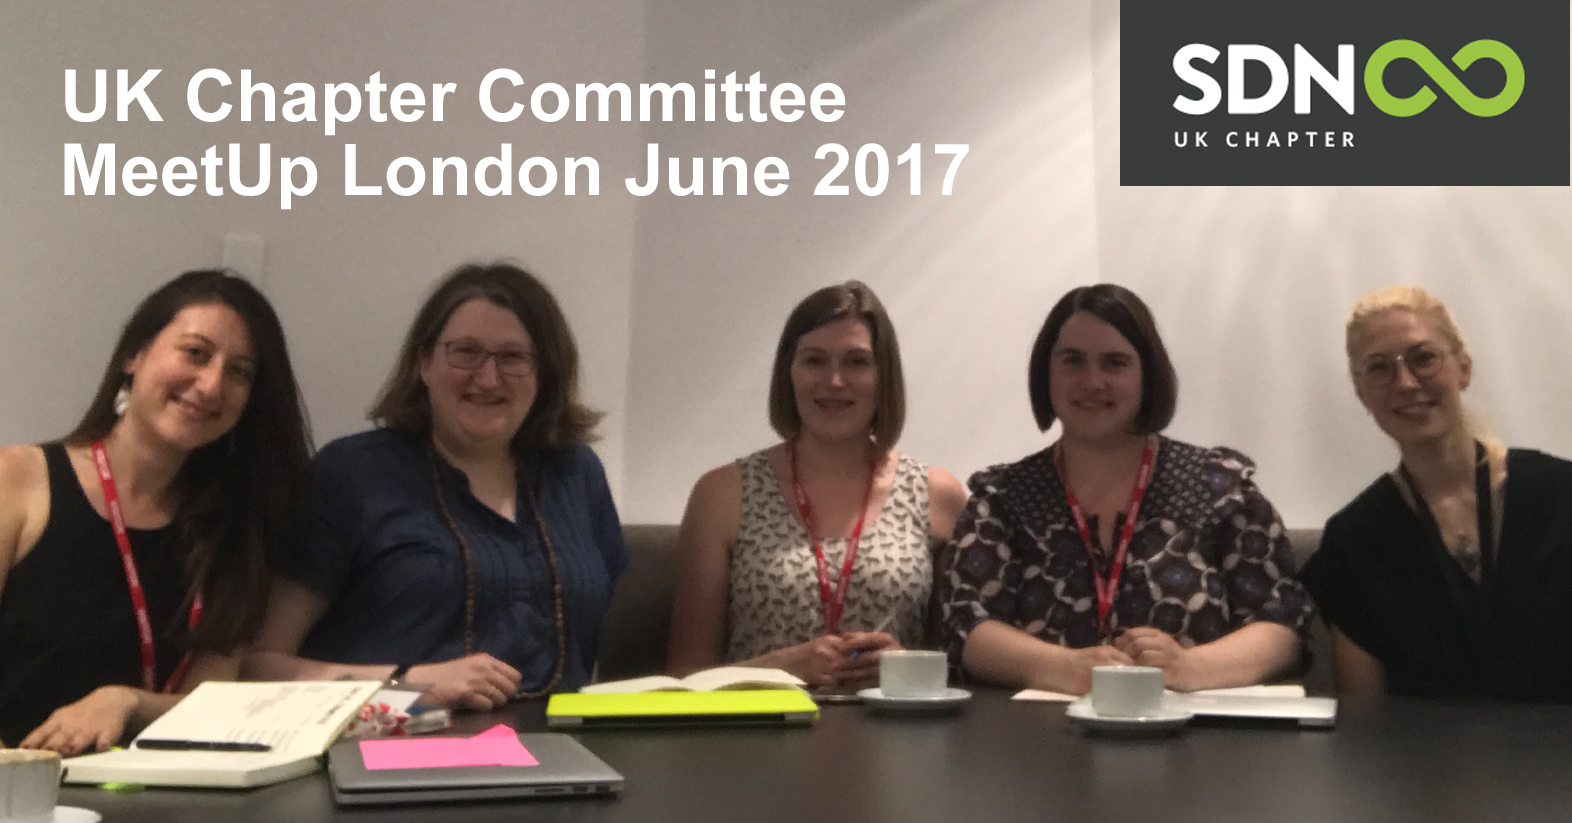 SDNUK-Committee-June-2017.jpg